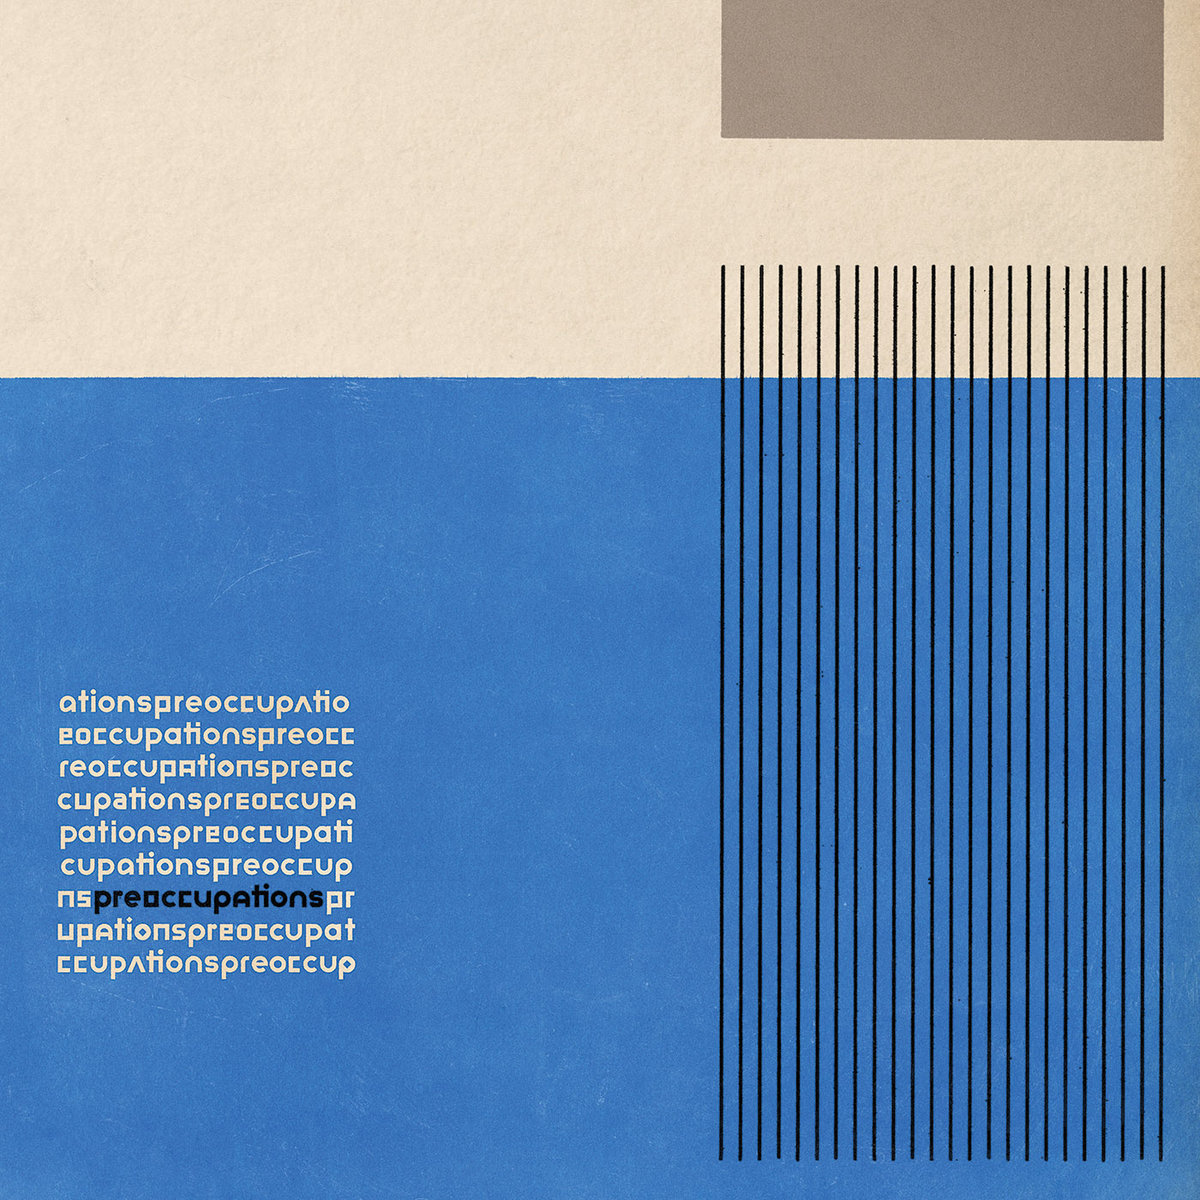 3 utwory  - 1. Preoccupations -